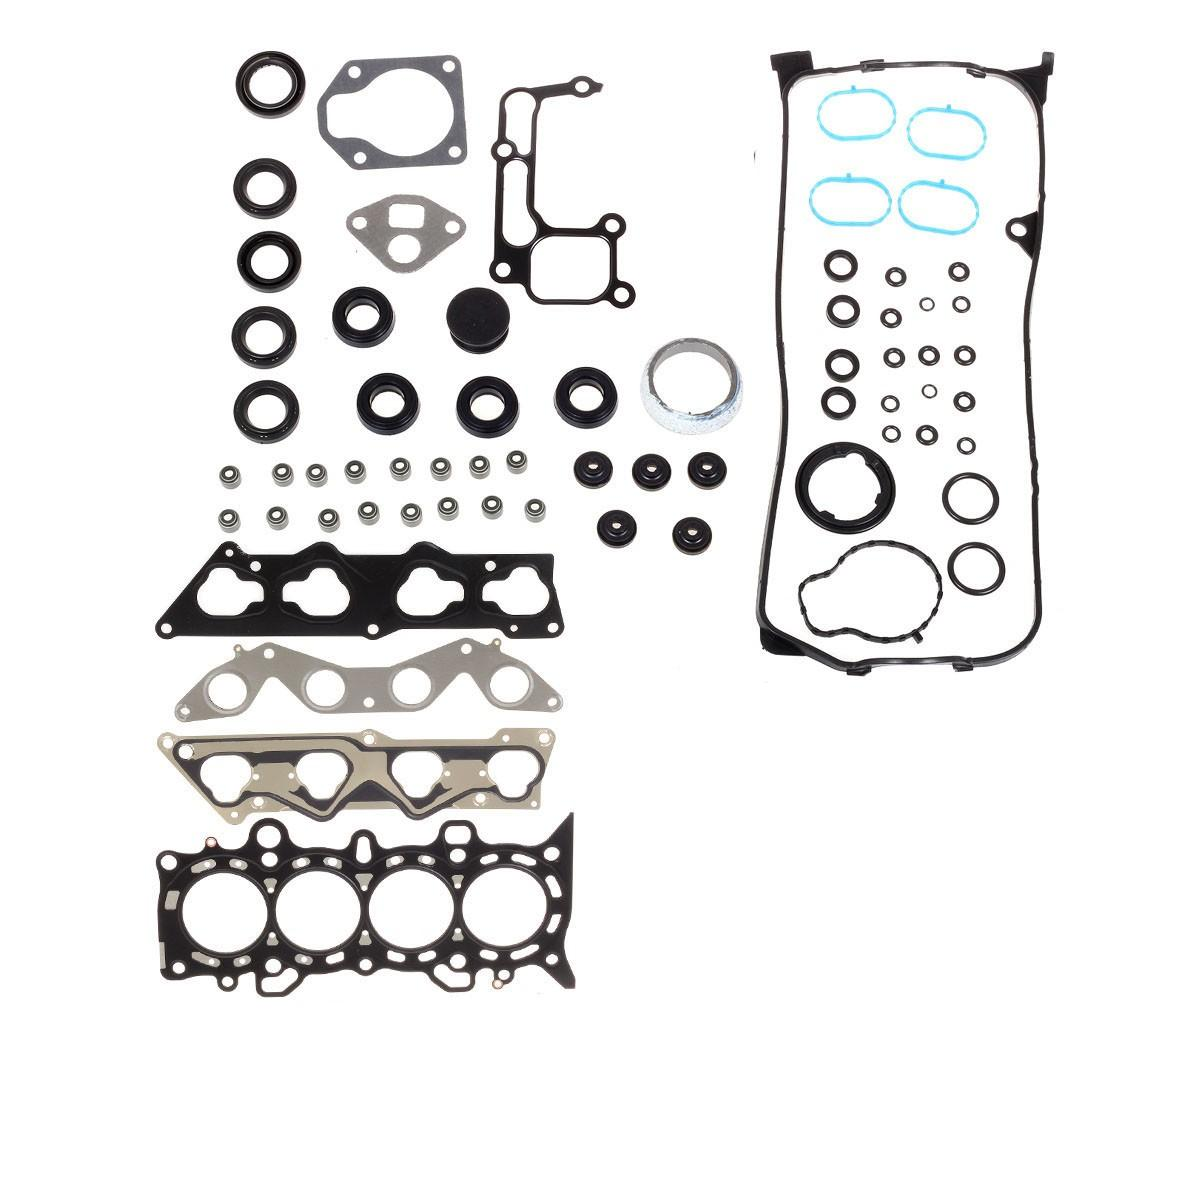 NEW Fits 2001-2005 Hoda Civic DX LX 1.7L Head Gasket Head